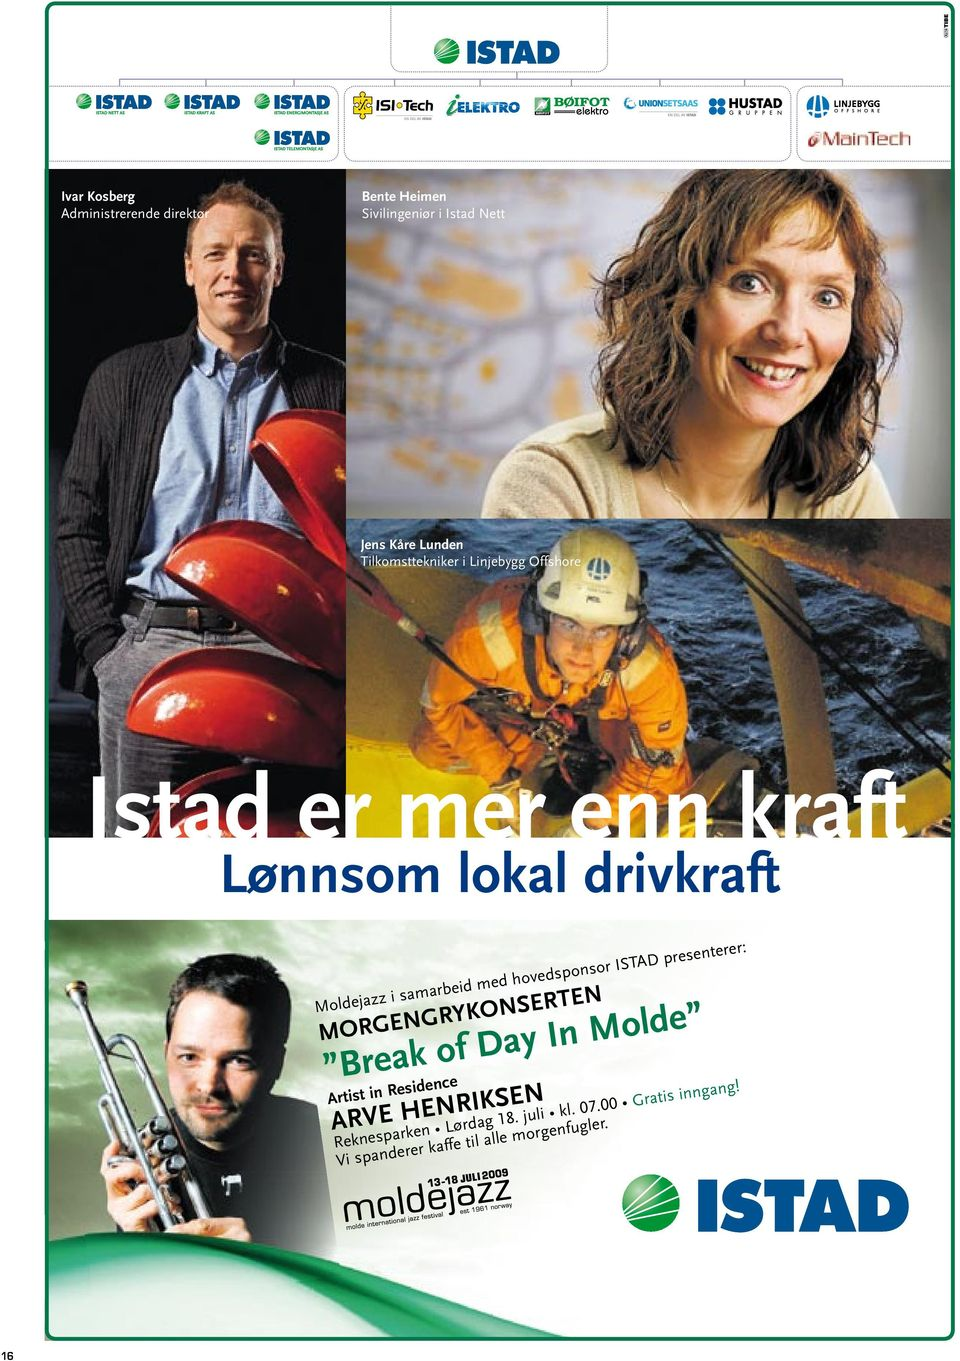 samarbeid med hovedsponsor ISTAD presenterer: MORGENGRYKONSERTEN Break of Day In Molde Artist in